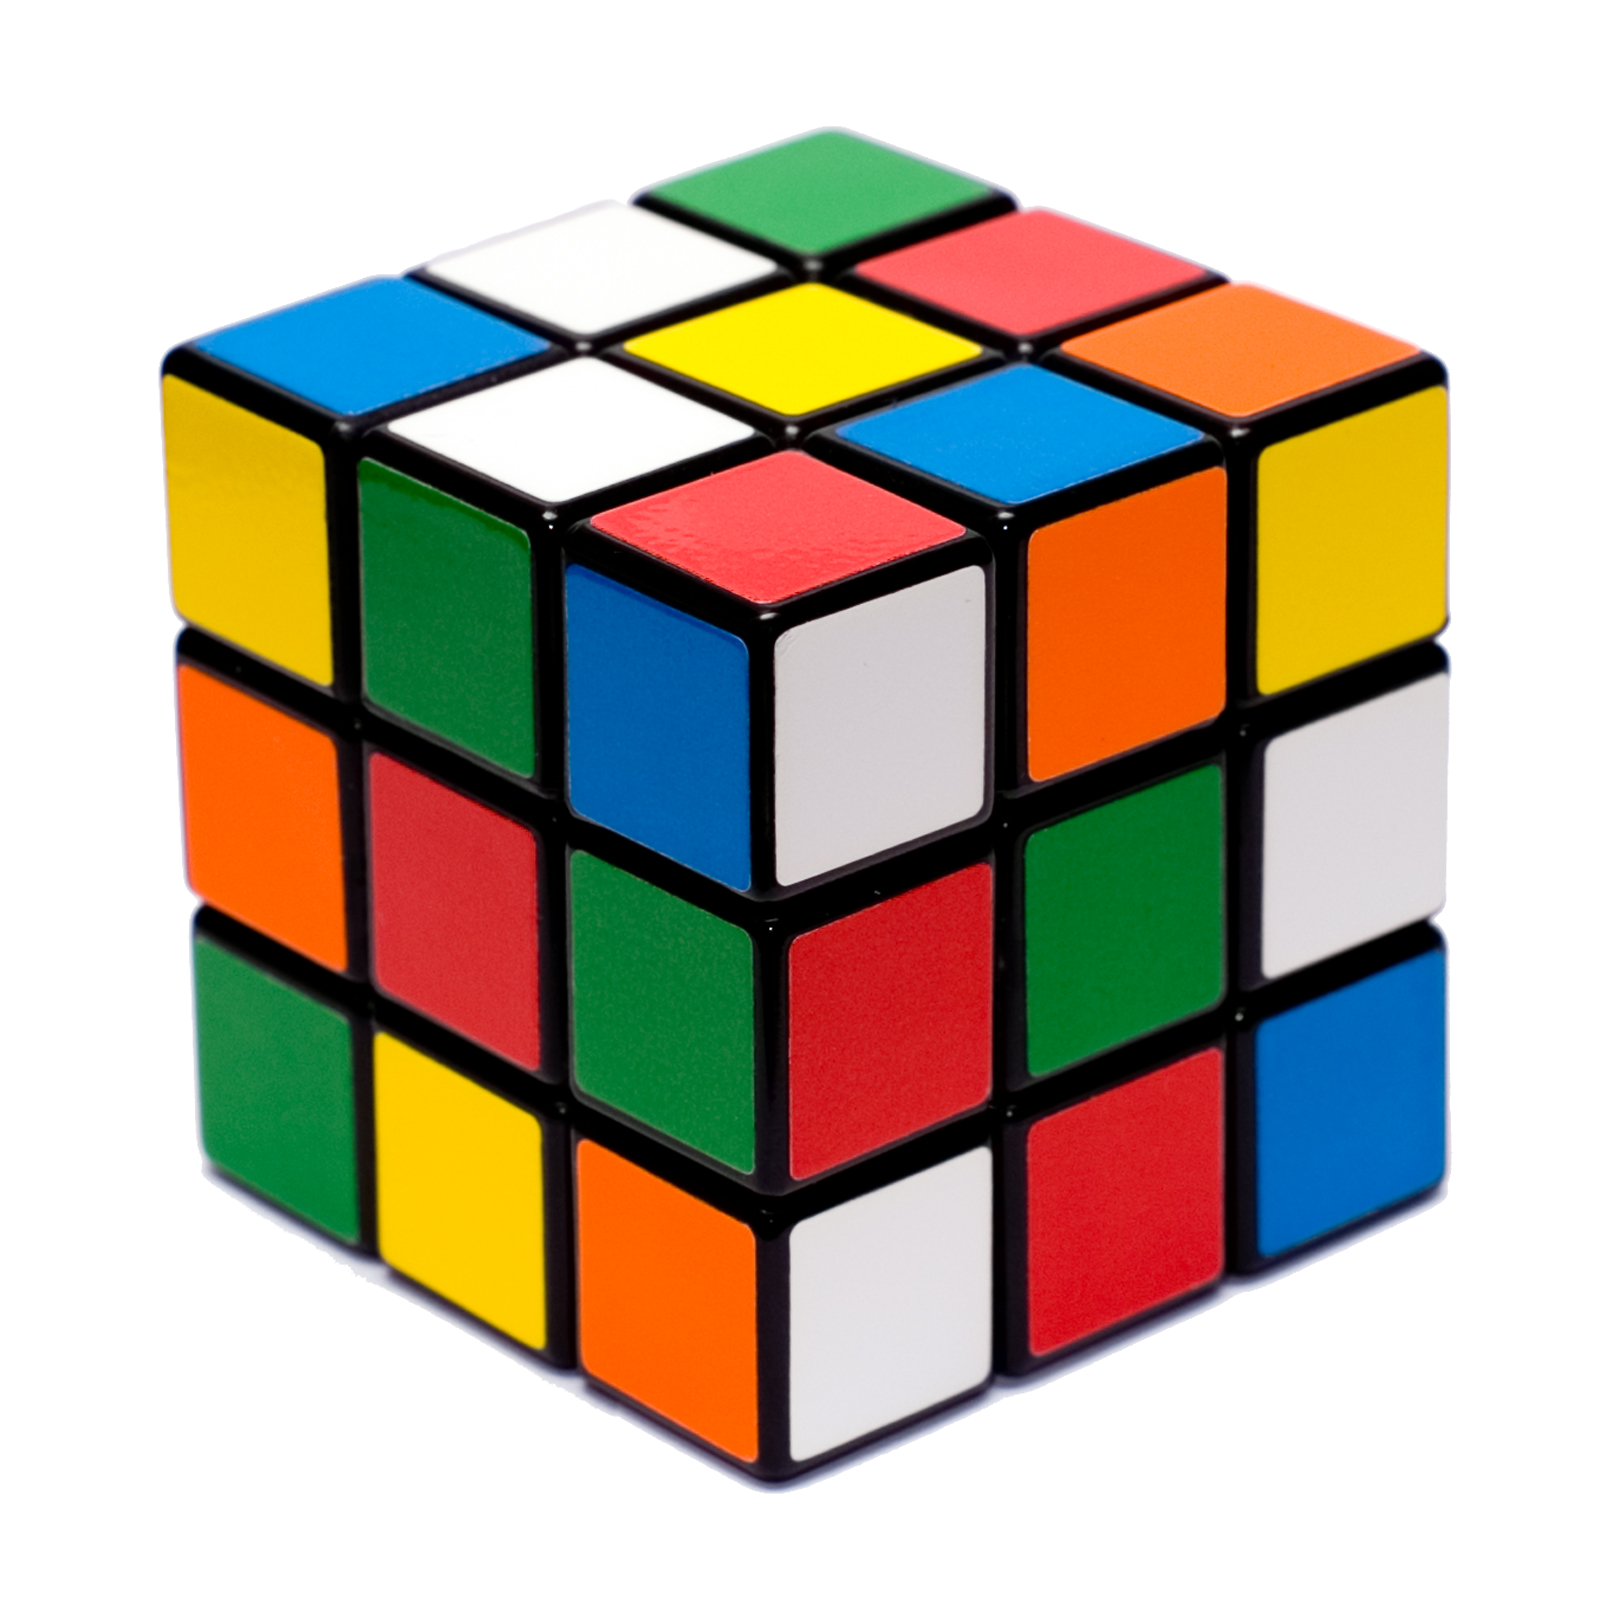 Rubik clipart cube shape. About something in the